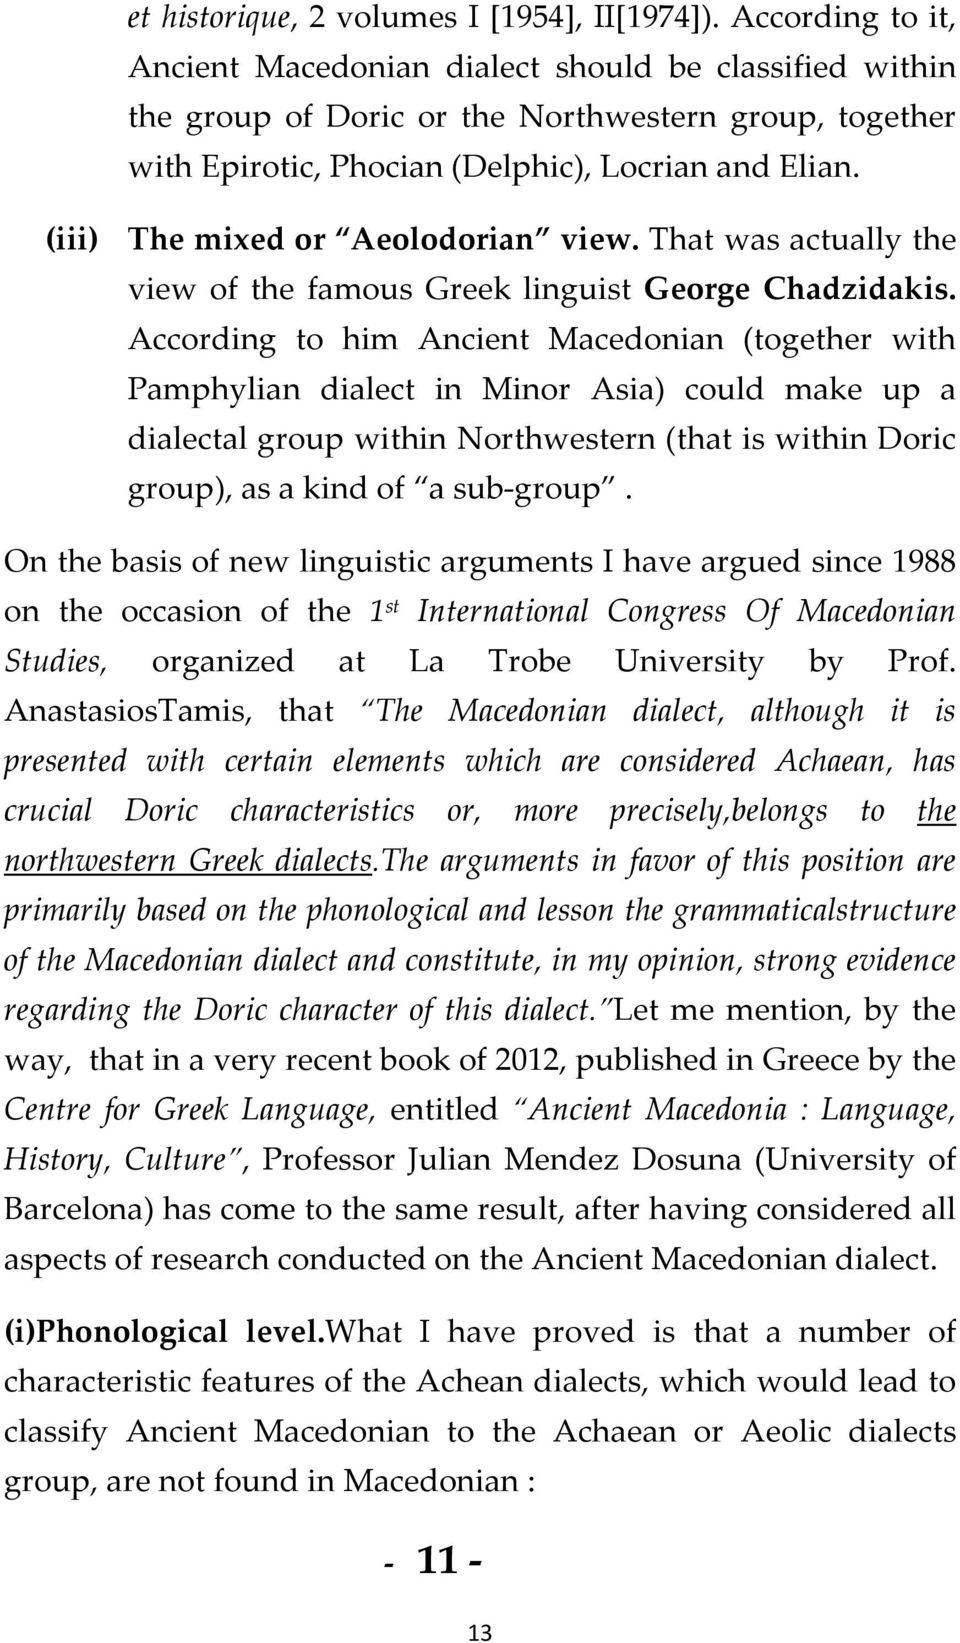 (iii) The mixed or Aeolodorian view. That was actually the view of the famous Greek linguist George Chadzidakis.